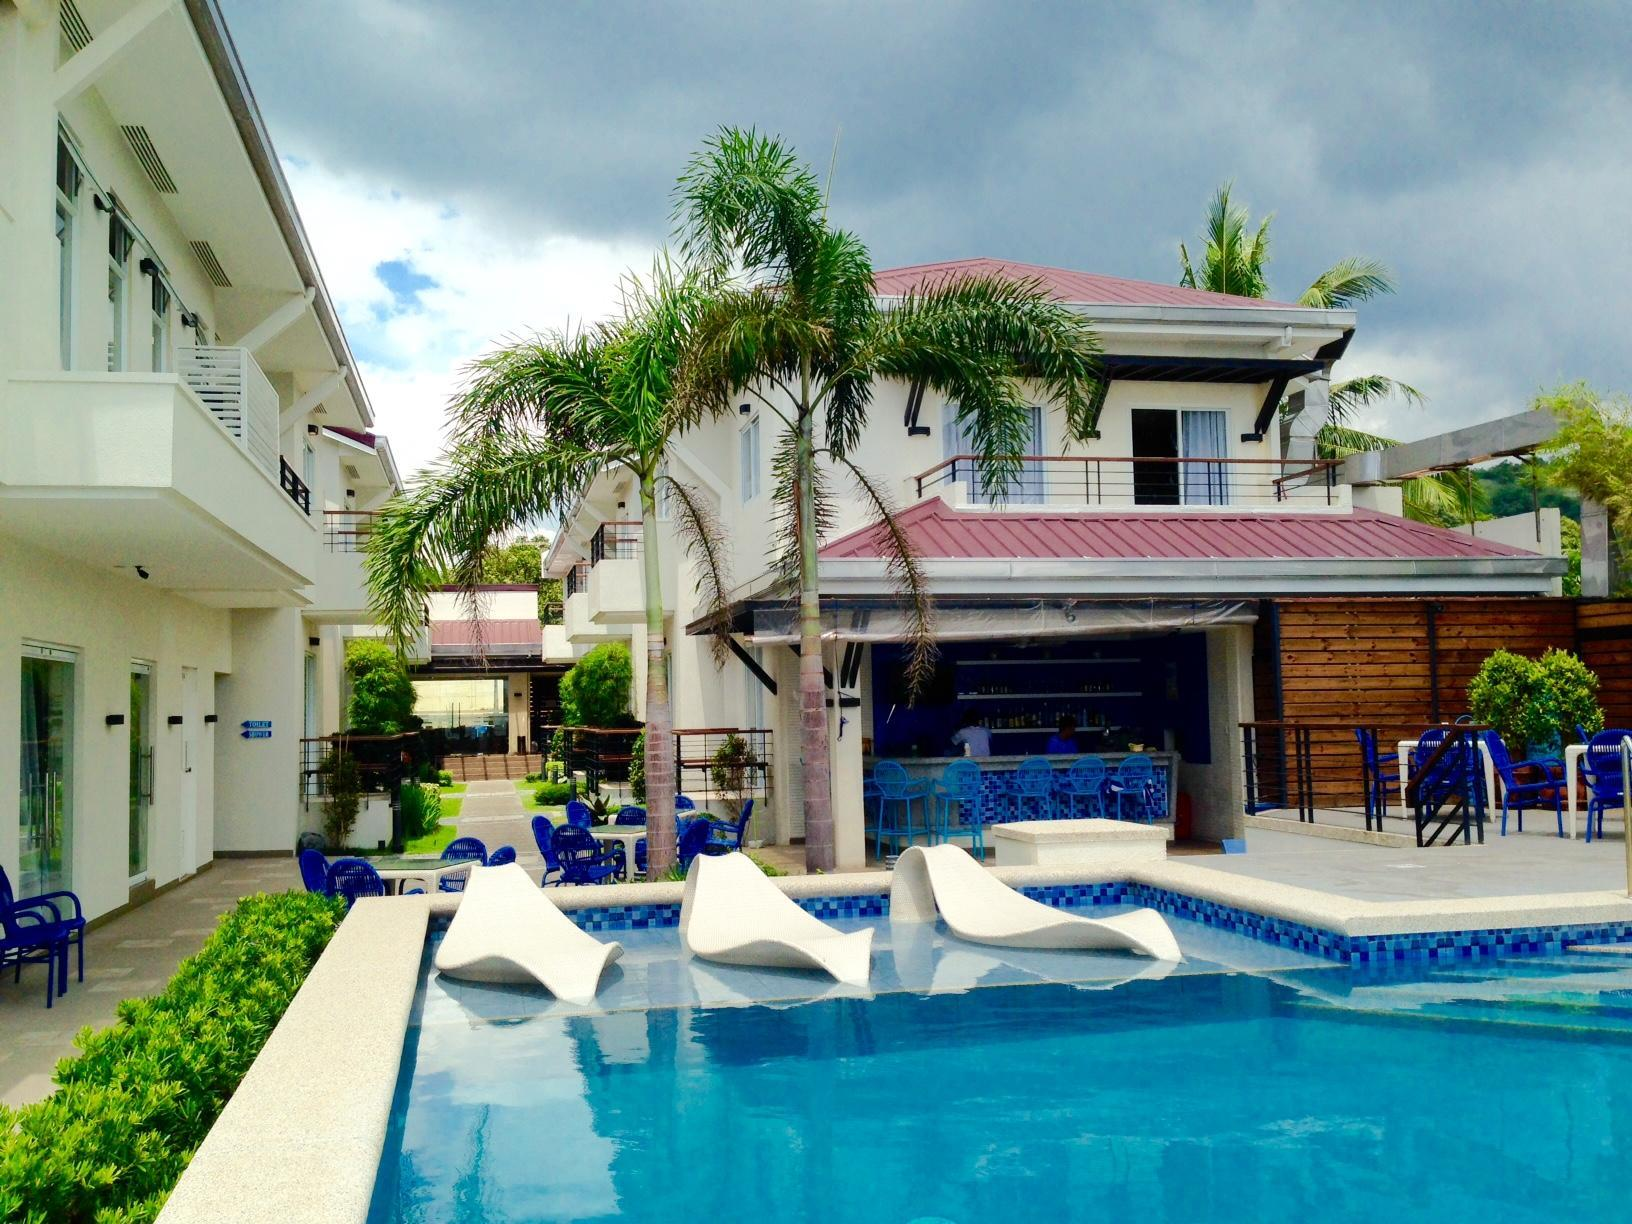 Icove Beach Hotel Subic Bay Subic Zambales Philippines Great Discounted Rates